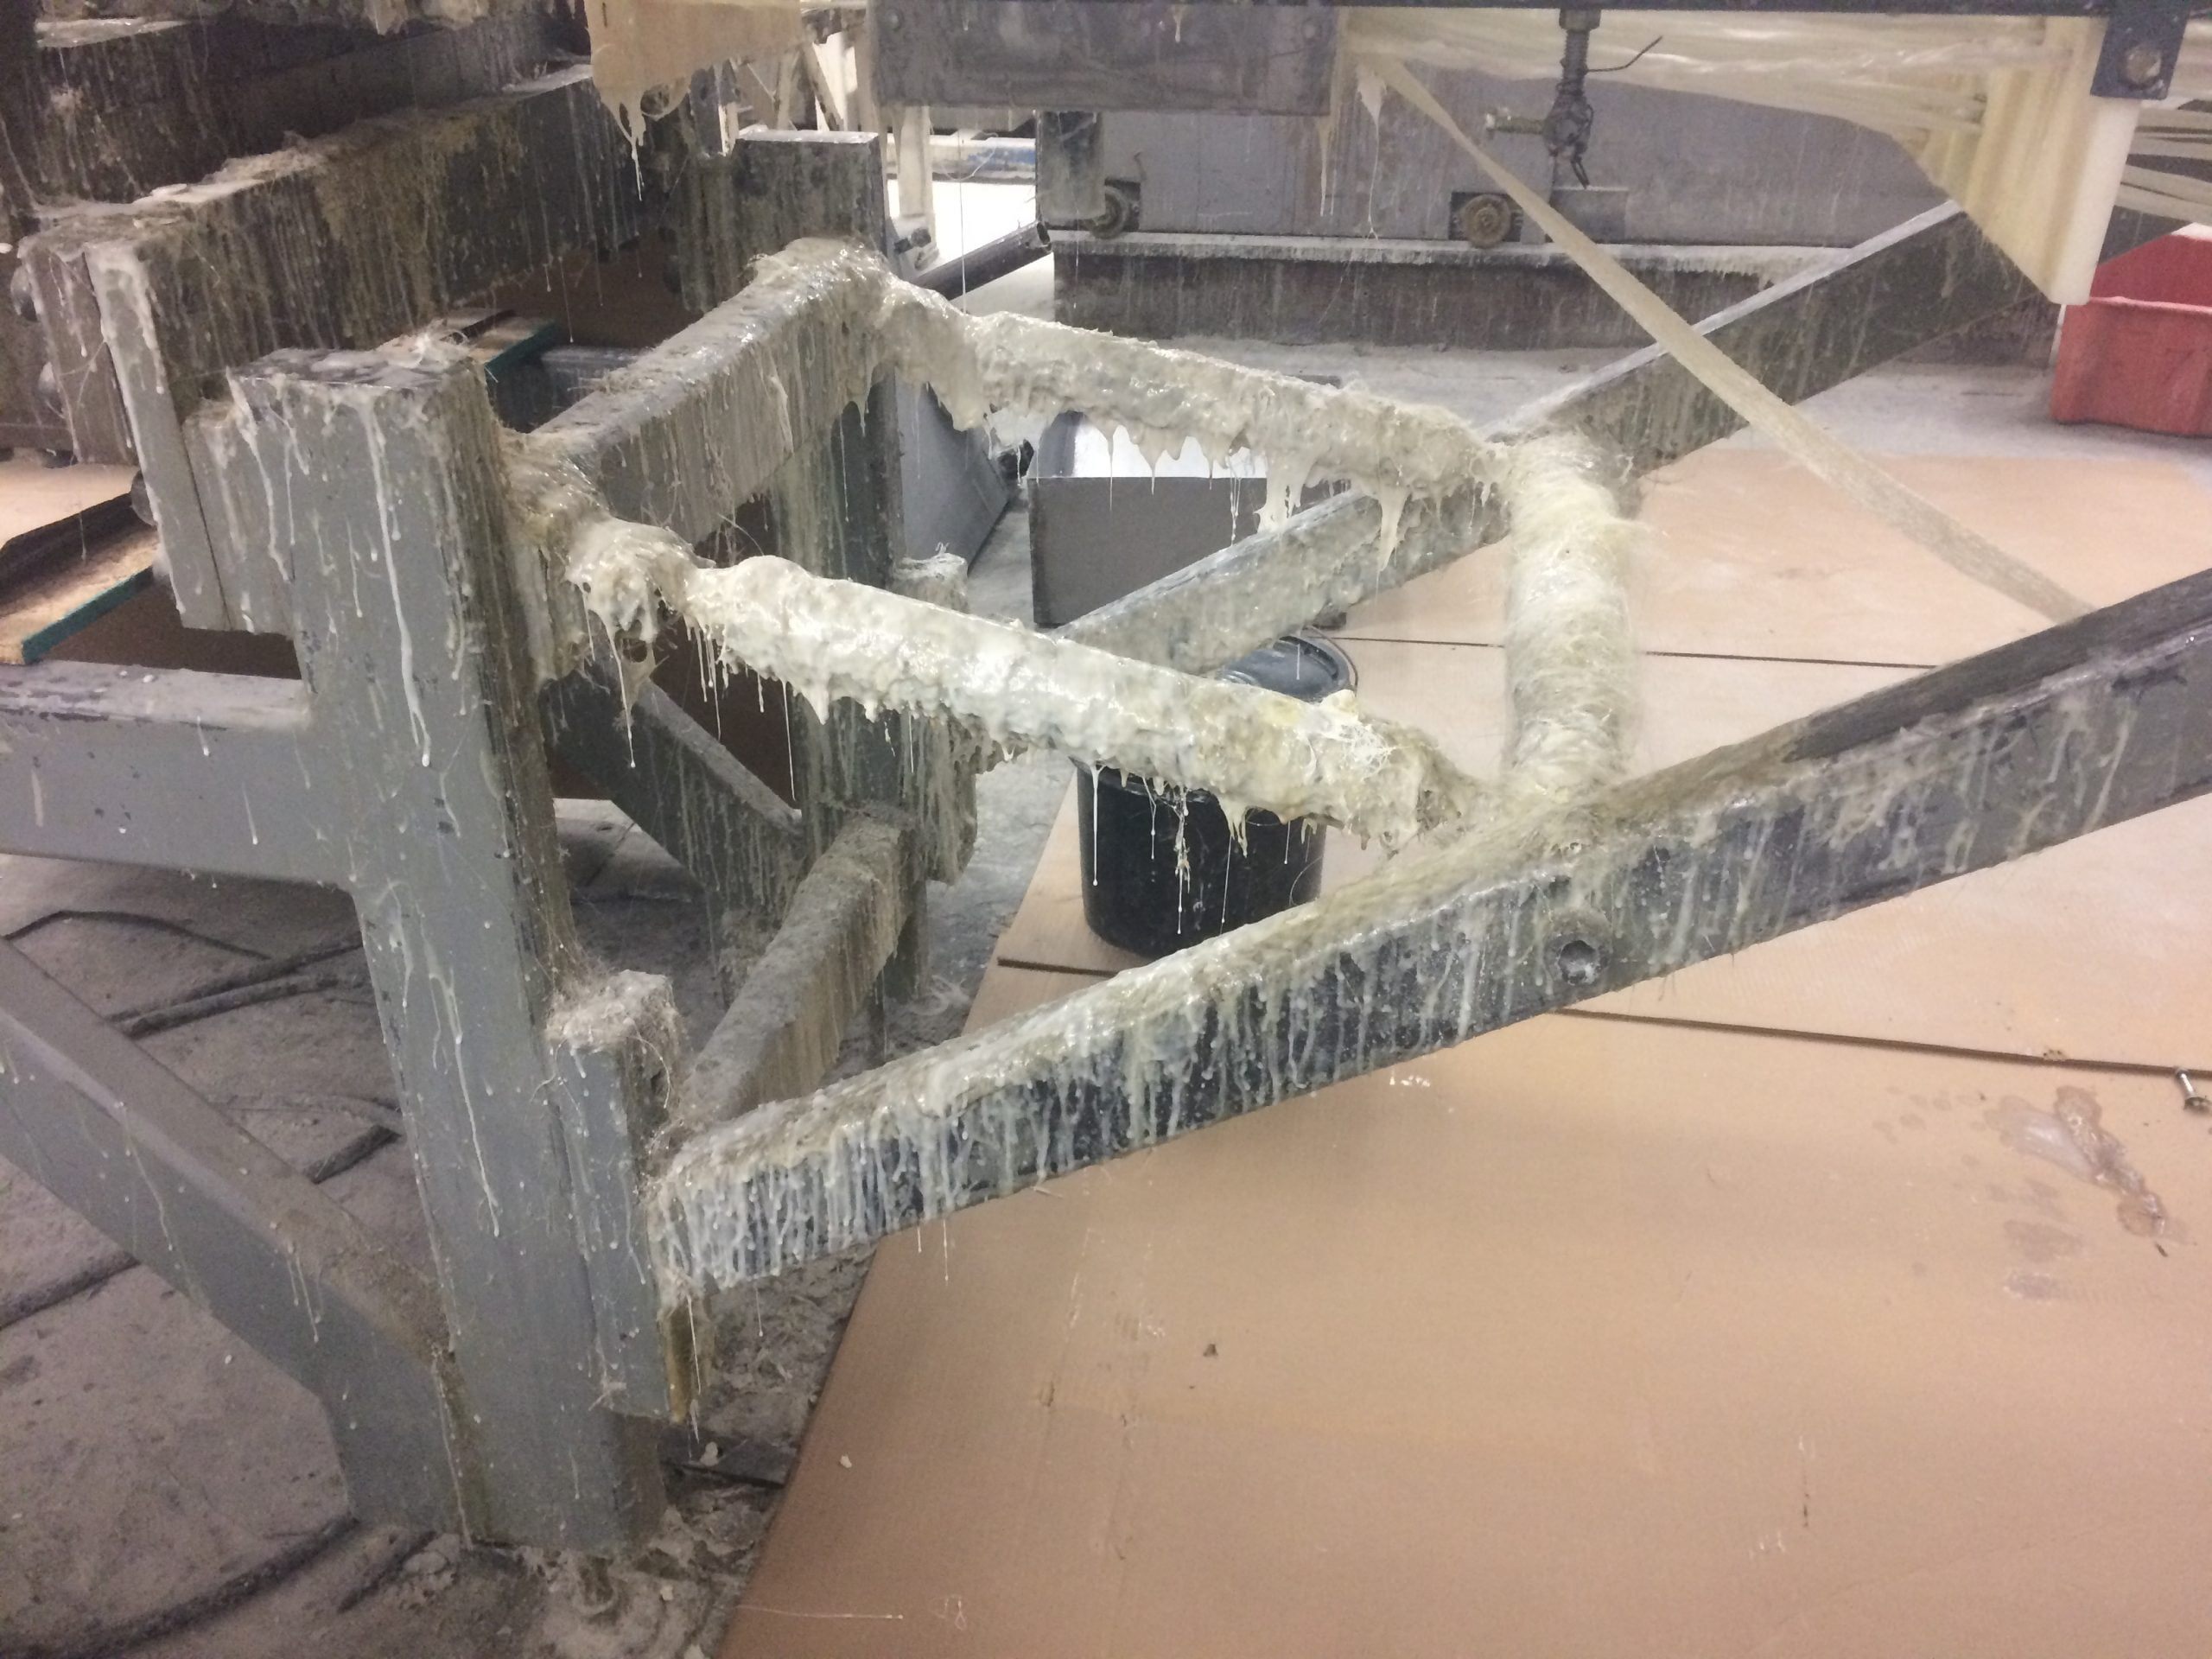 Pultrusion Before Industrial Cleaning With Dry Ice Blasting And Machine Restoration